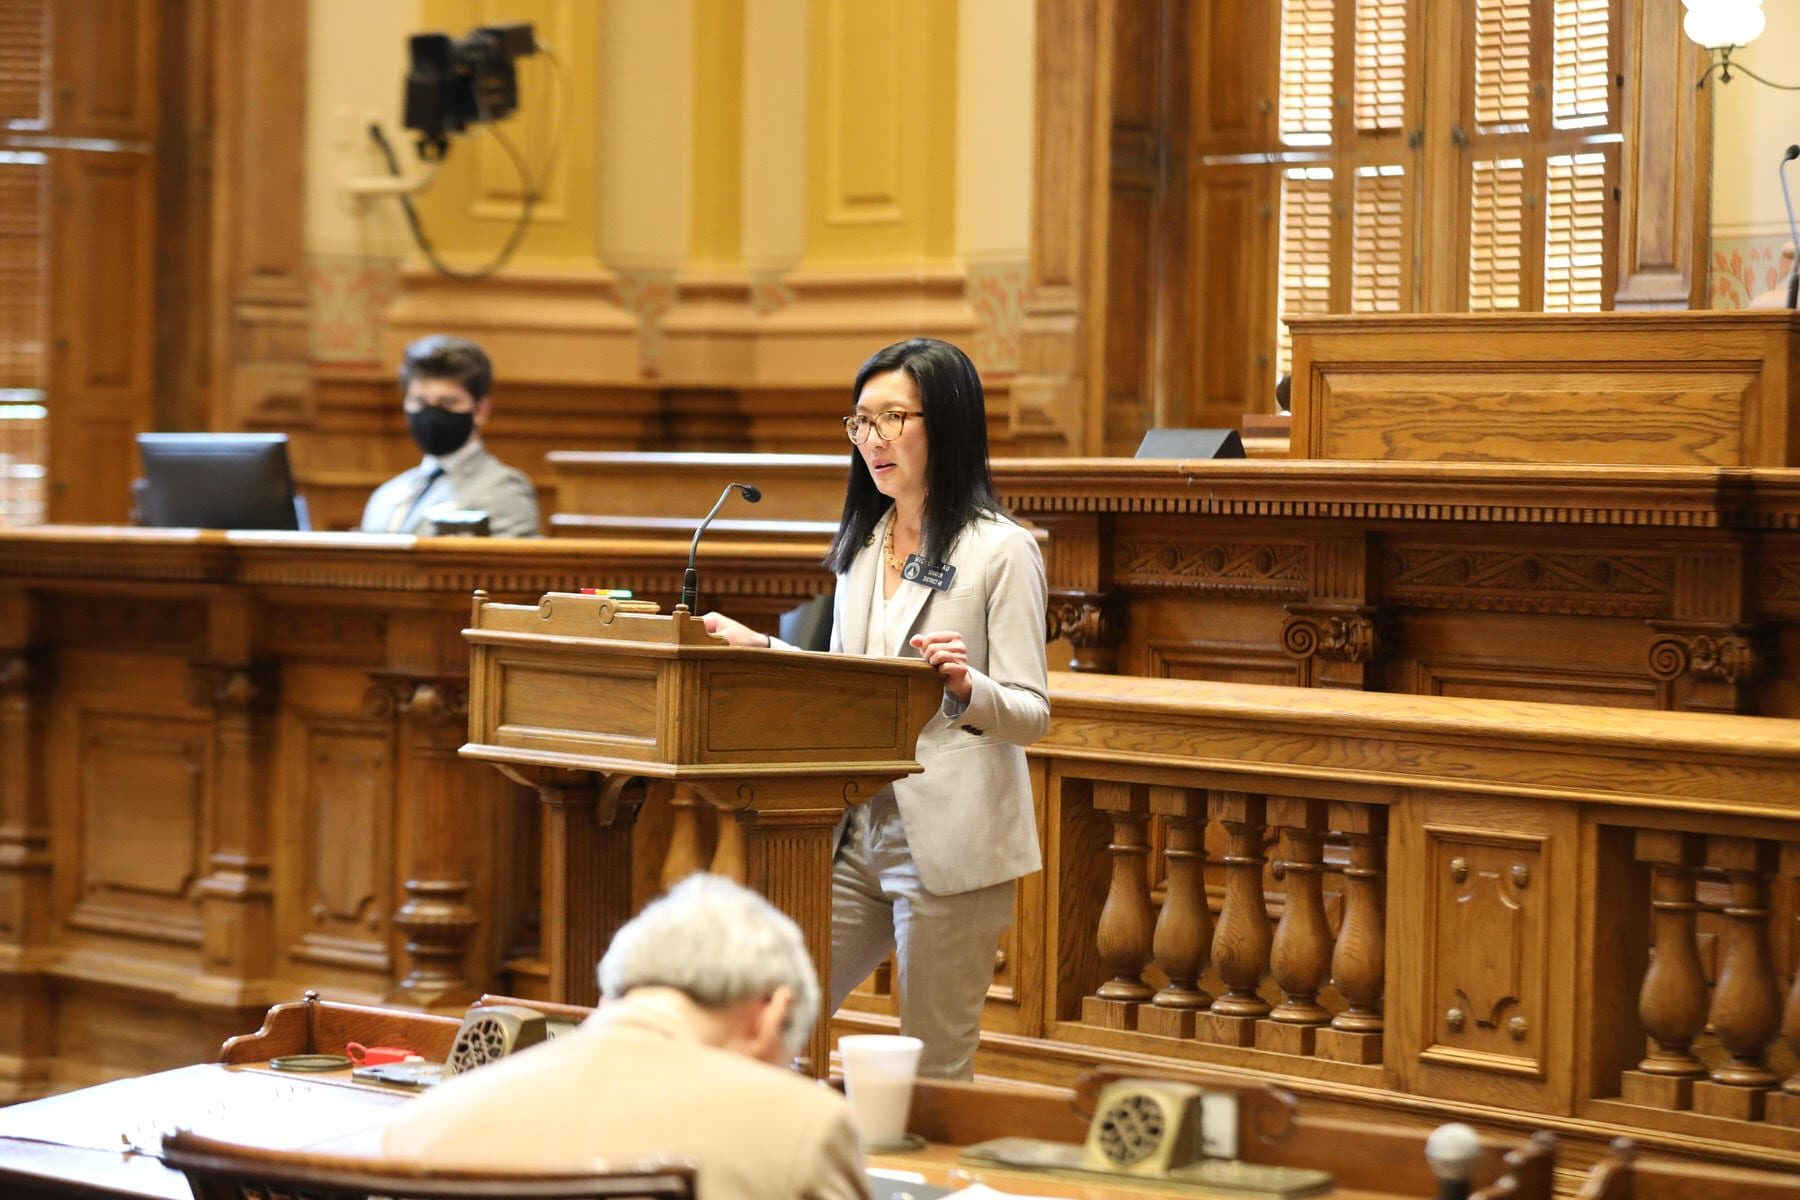 Sen. Michelle Au, D-GA, speaking from the well